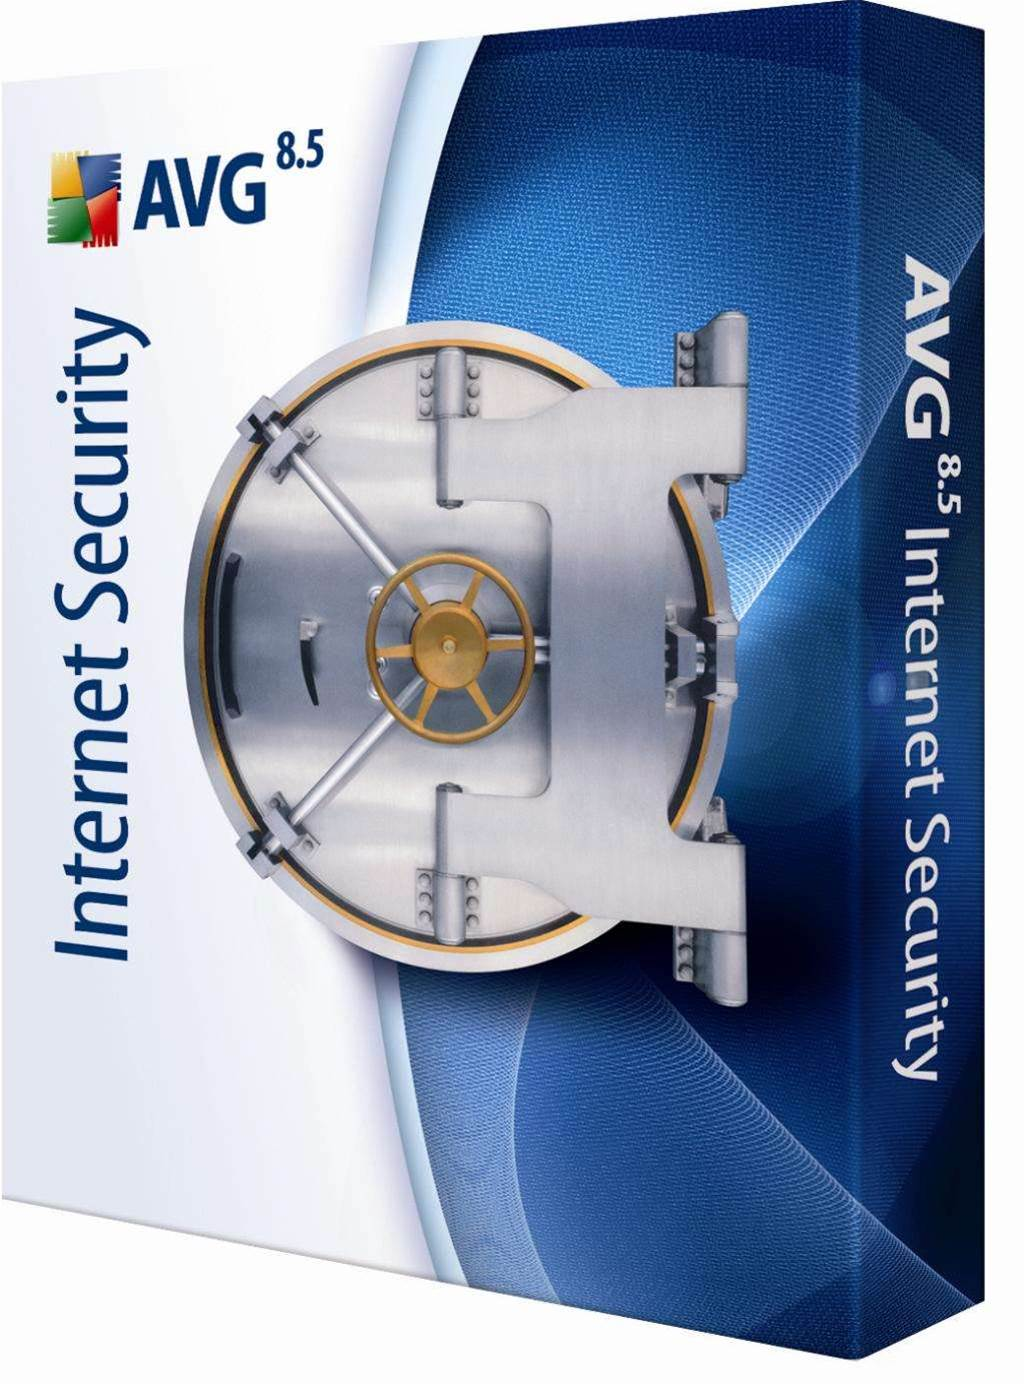 AVG protects students with Star-Tech